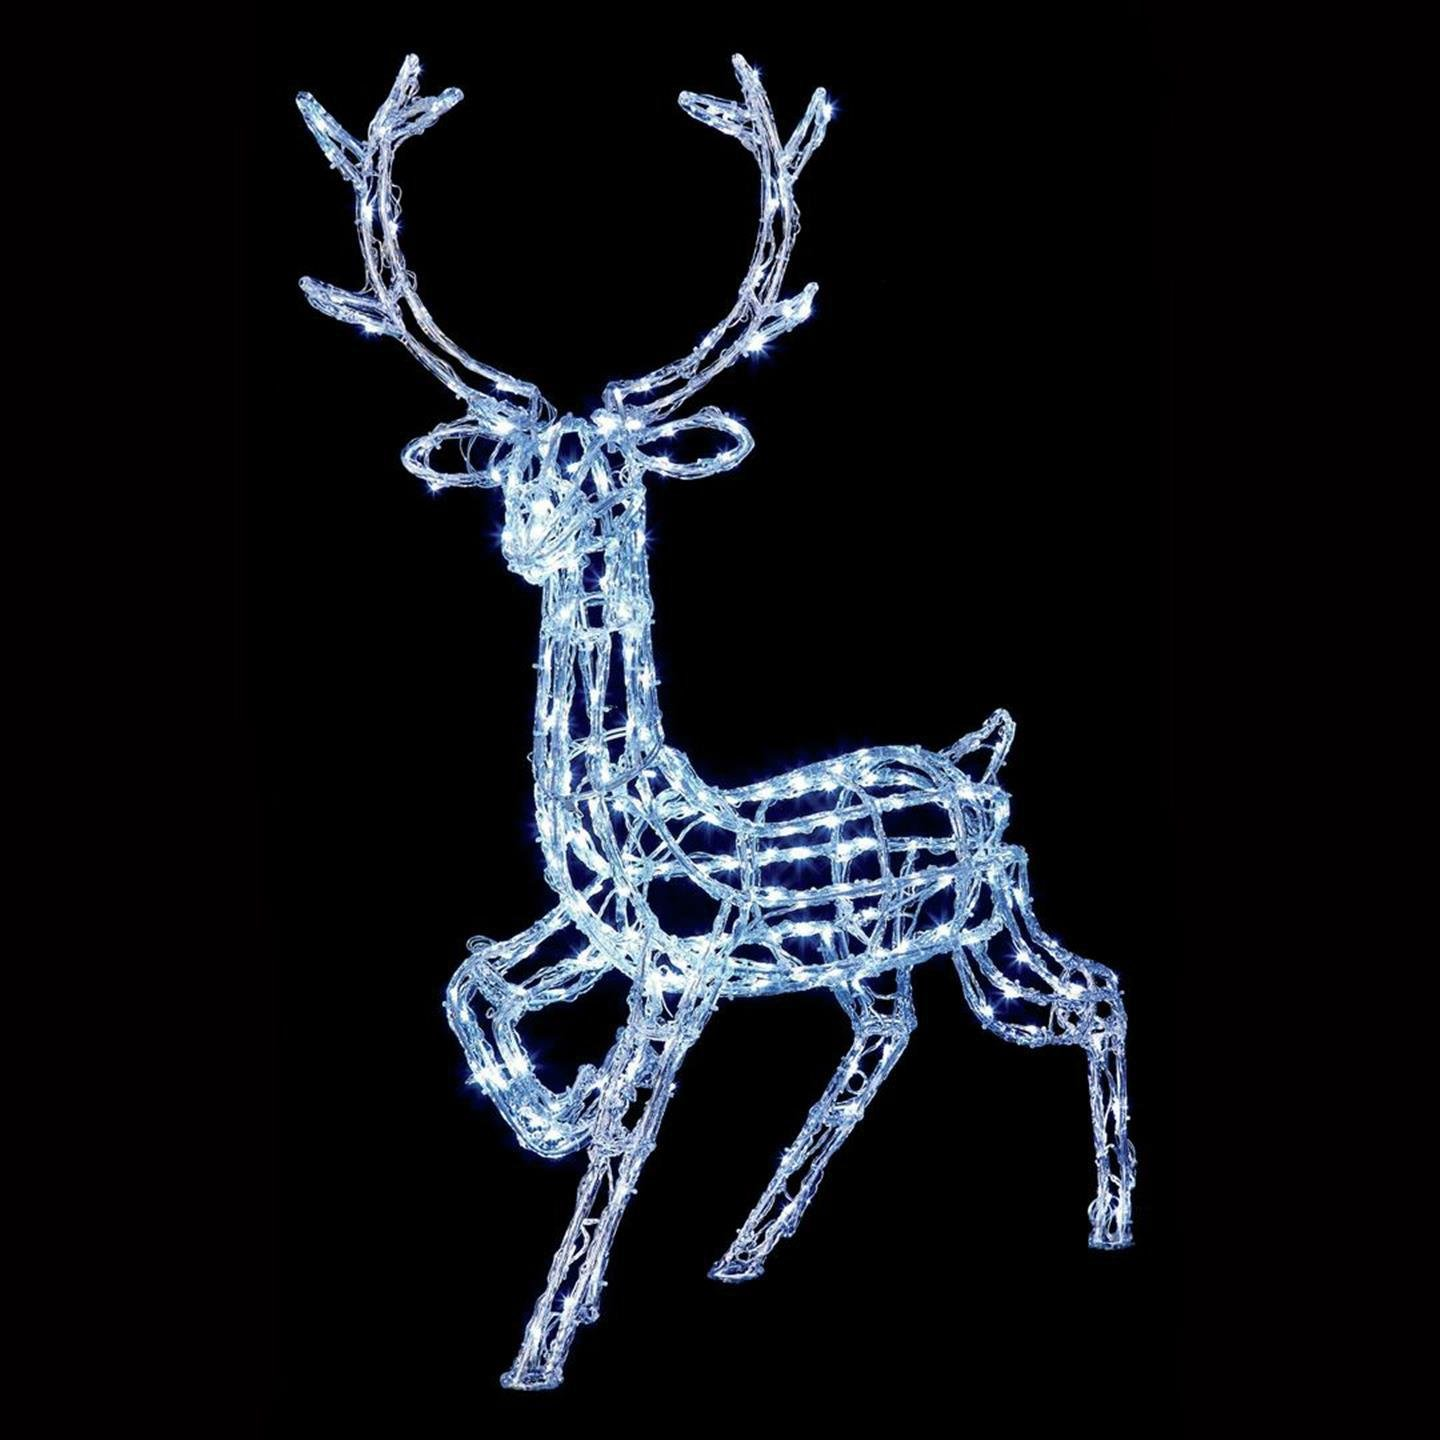 premier-decorations-1m-white-led-acrylic-standing-reindeer